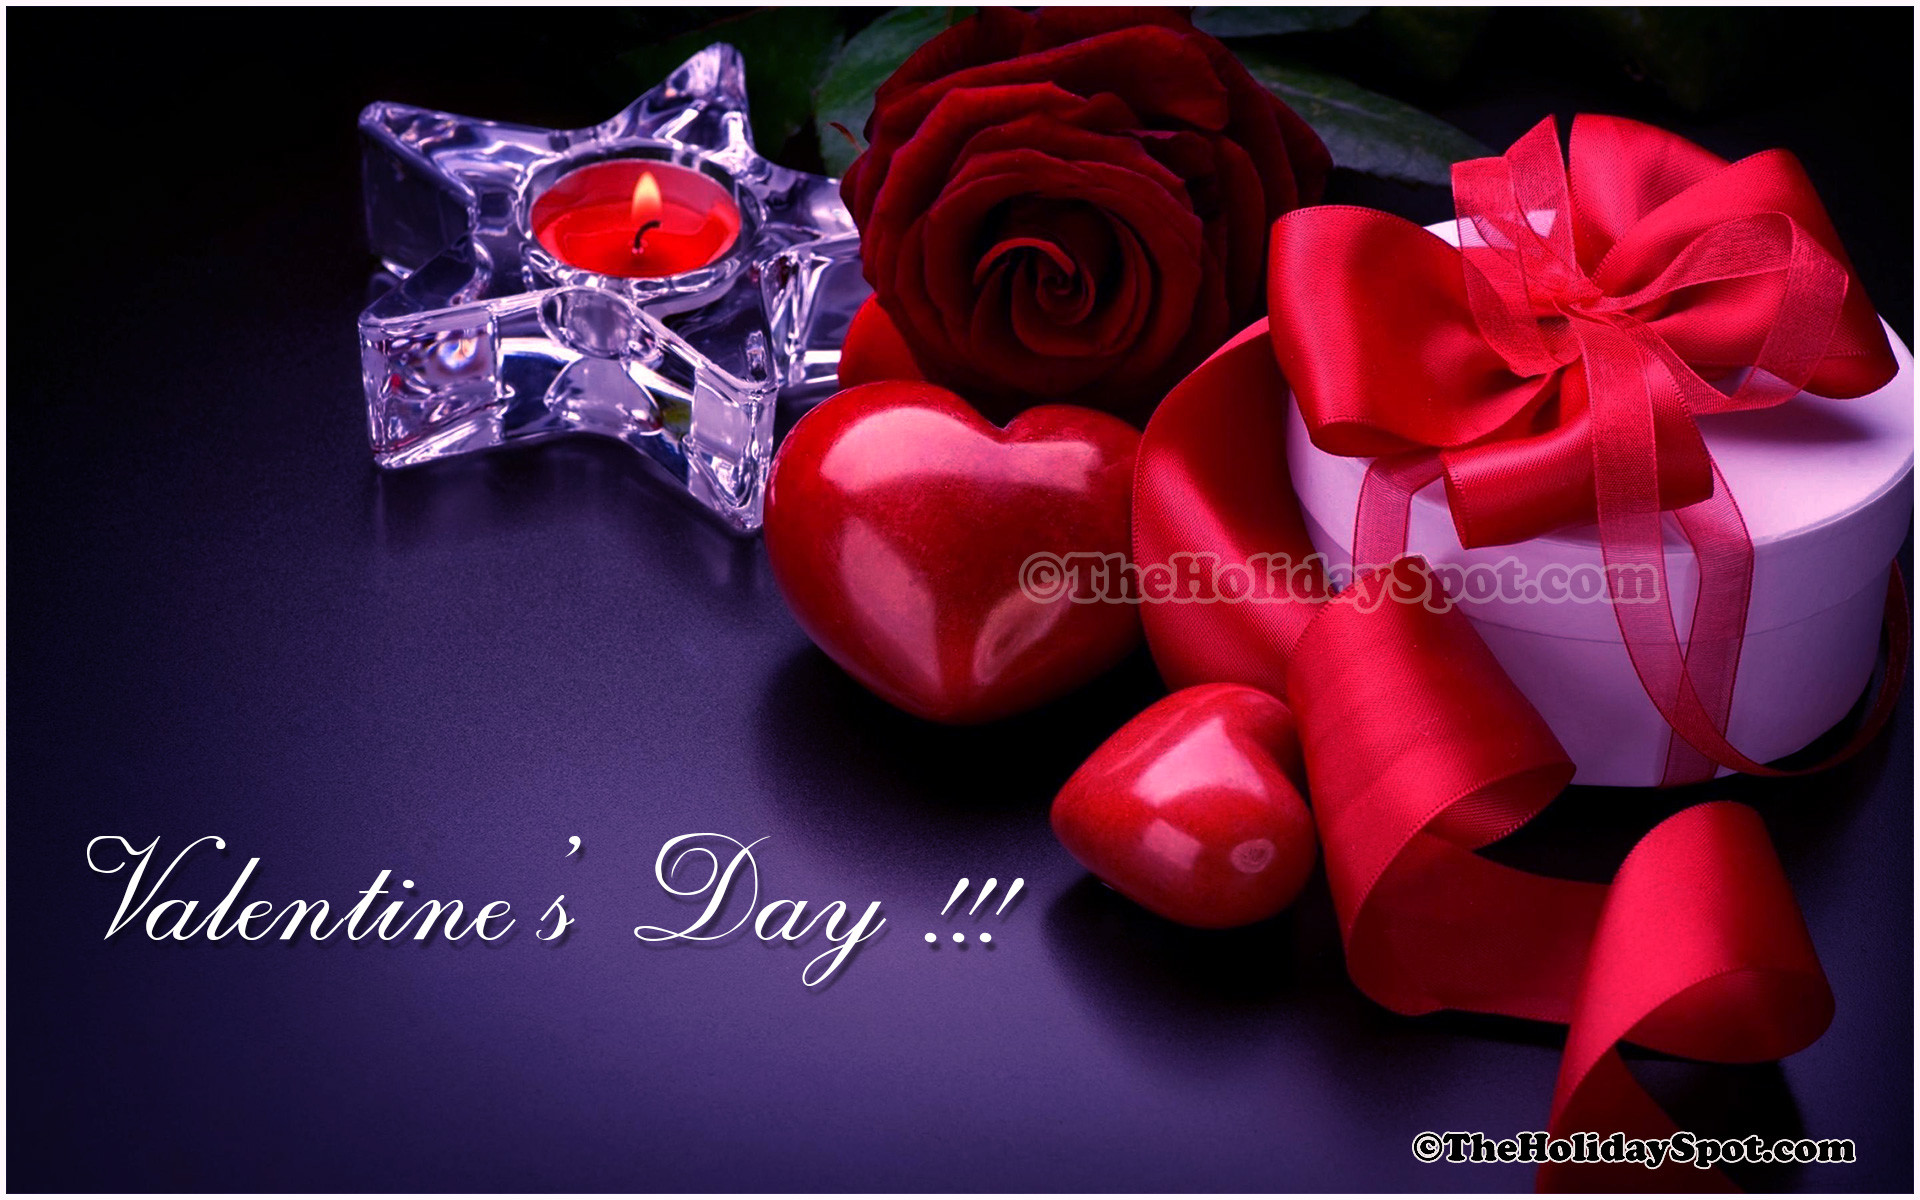 Download free valentine's day wallpapers of love with gifts